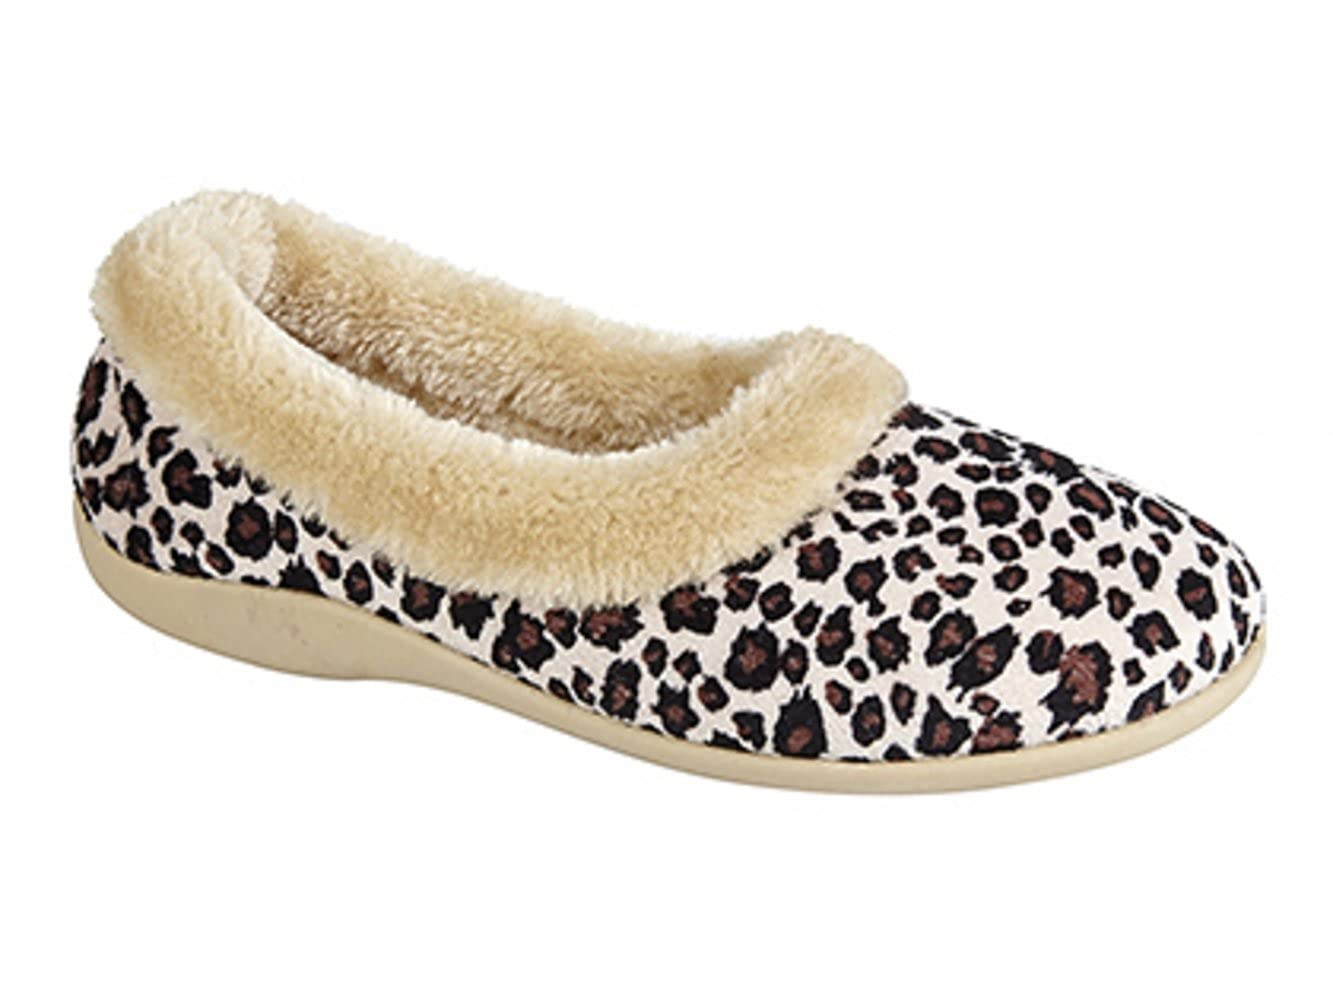 6fdbc9ee006e Dunlop PENNY Ladies Ocelot Velour Full Slippers Leopard Print:  Amazon.co.uk: Shoes & Bags